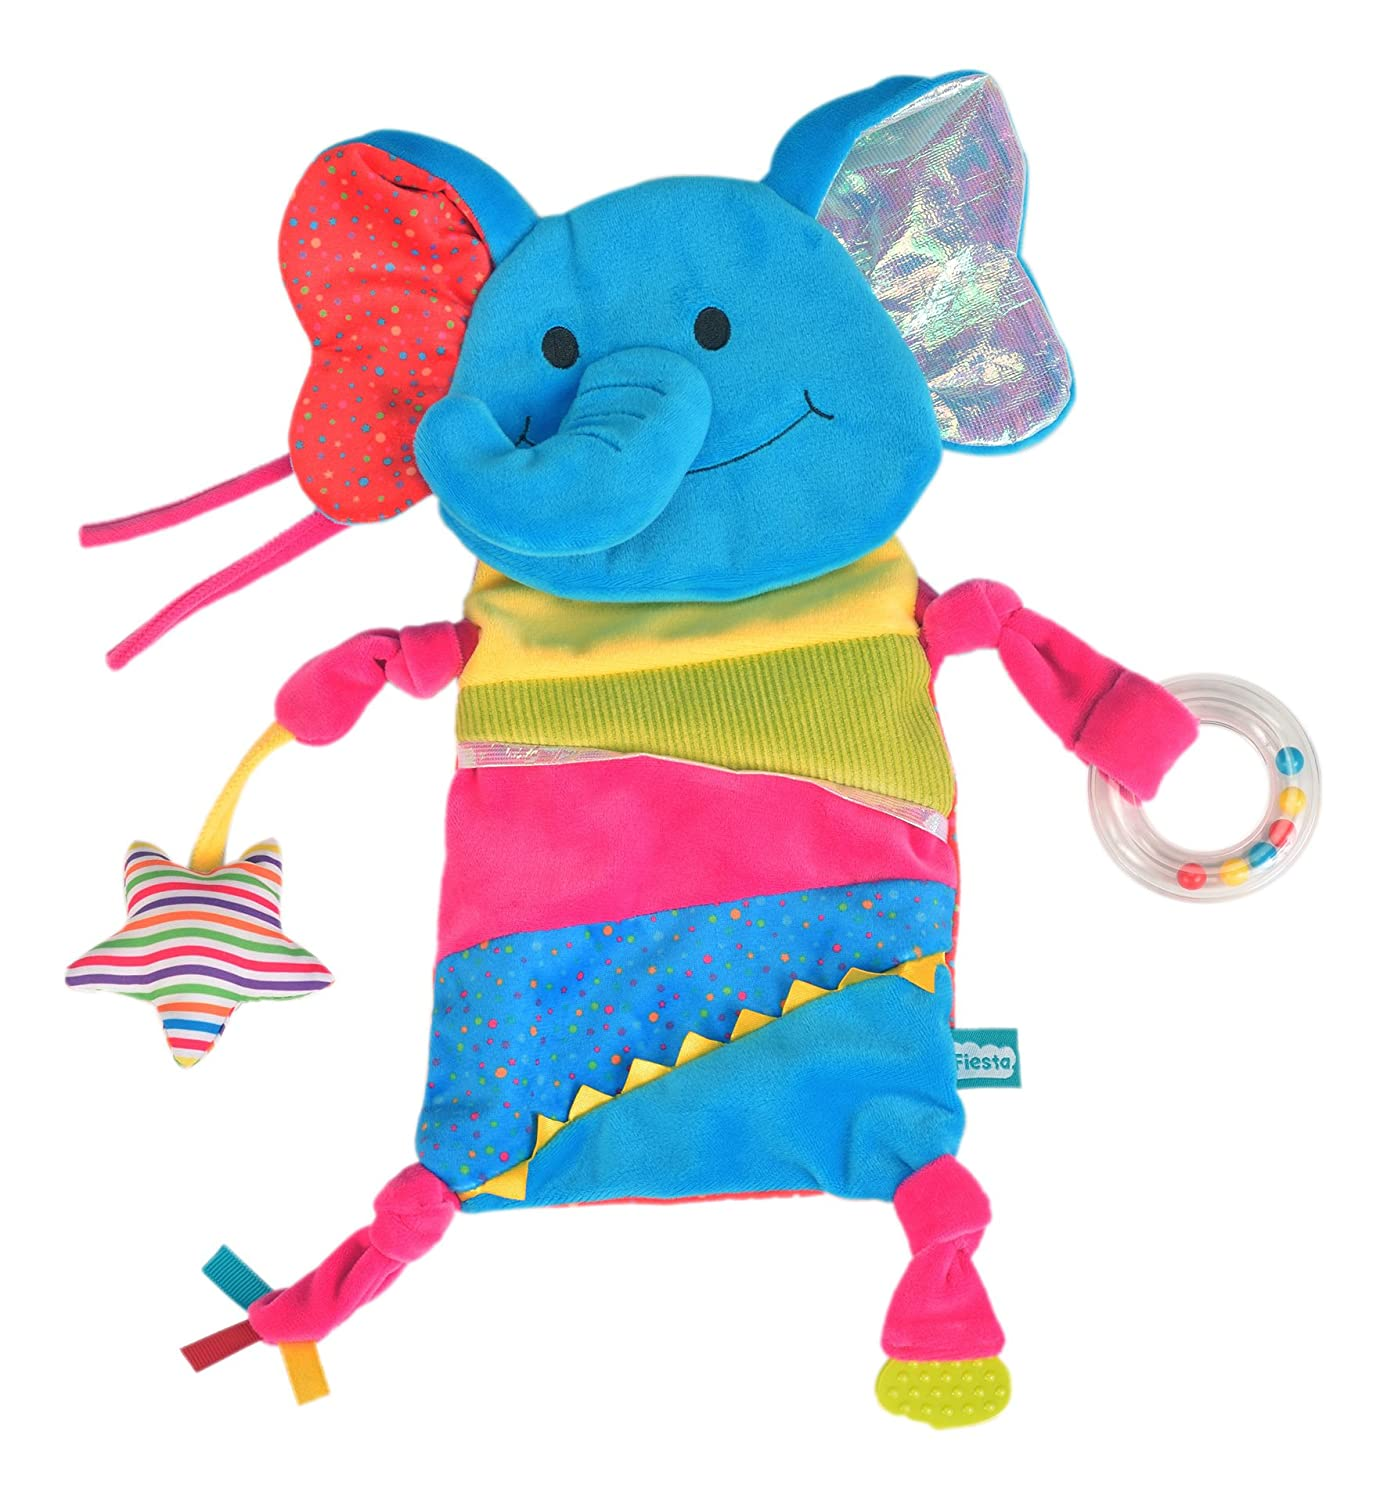 Fiesta Crafts T-2907 Elephant Play Blankie